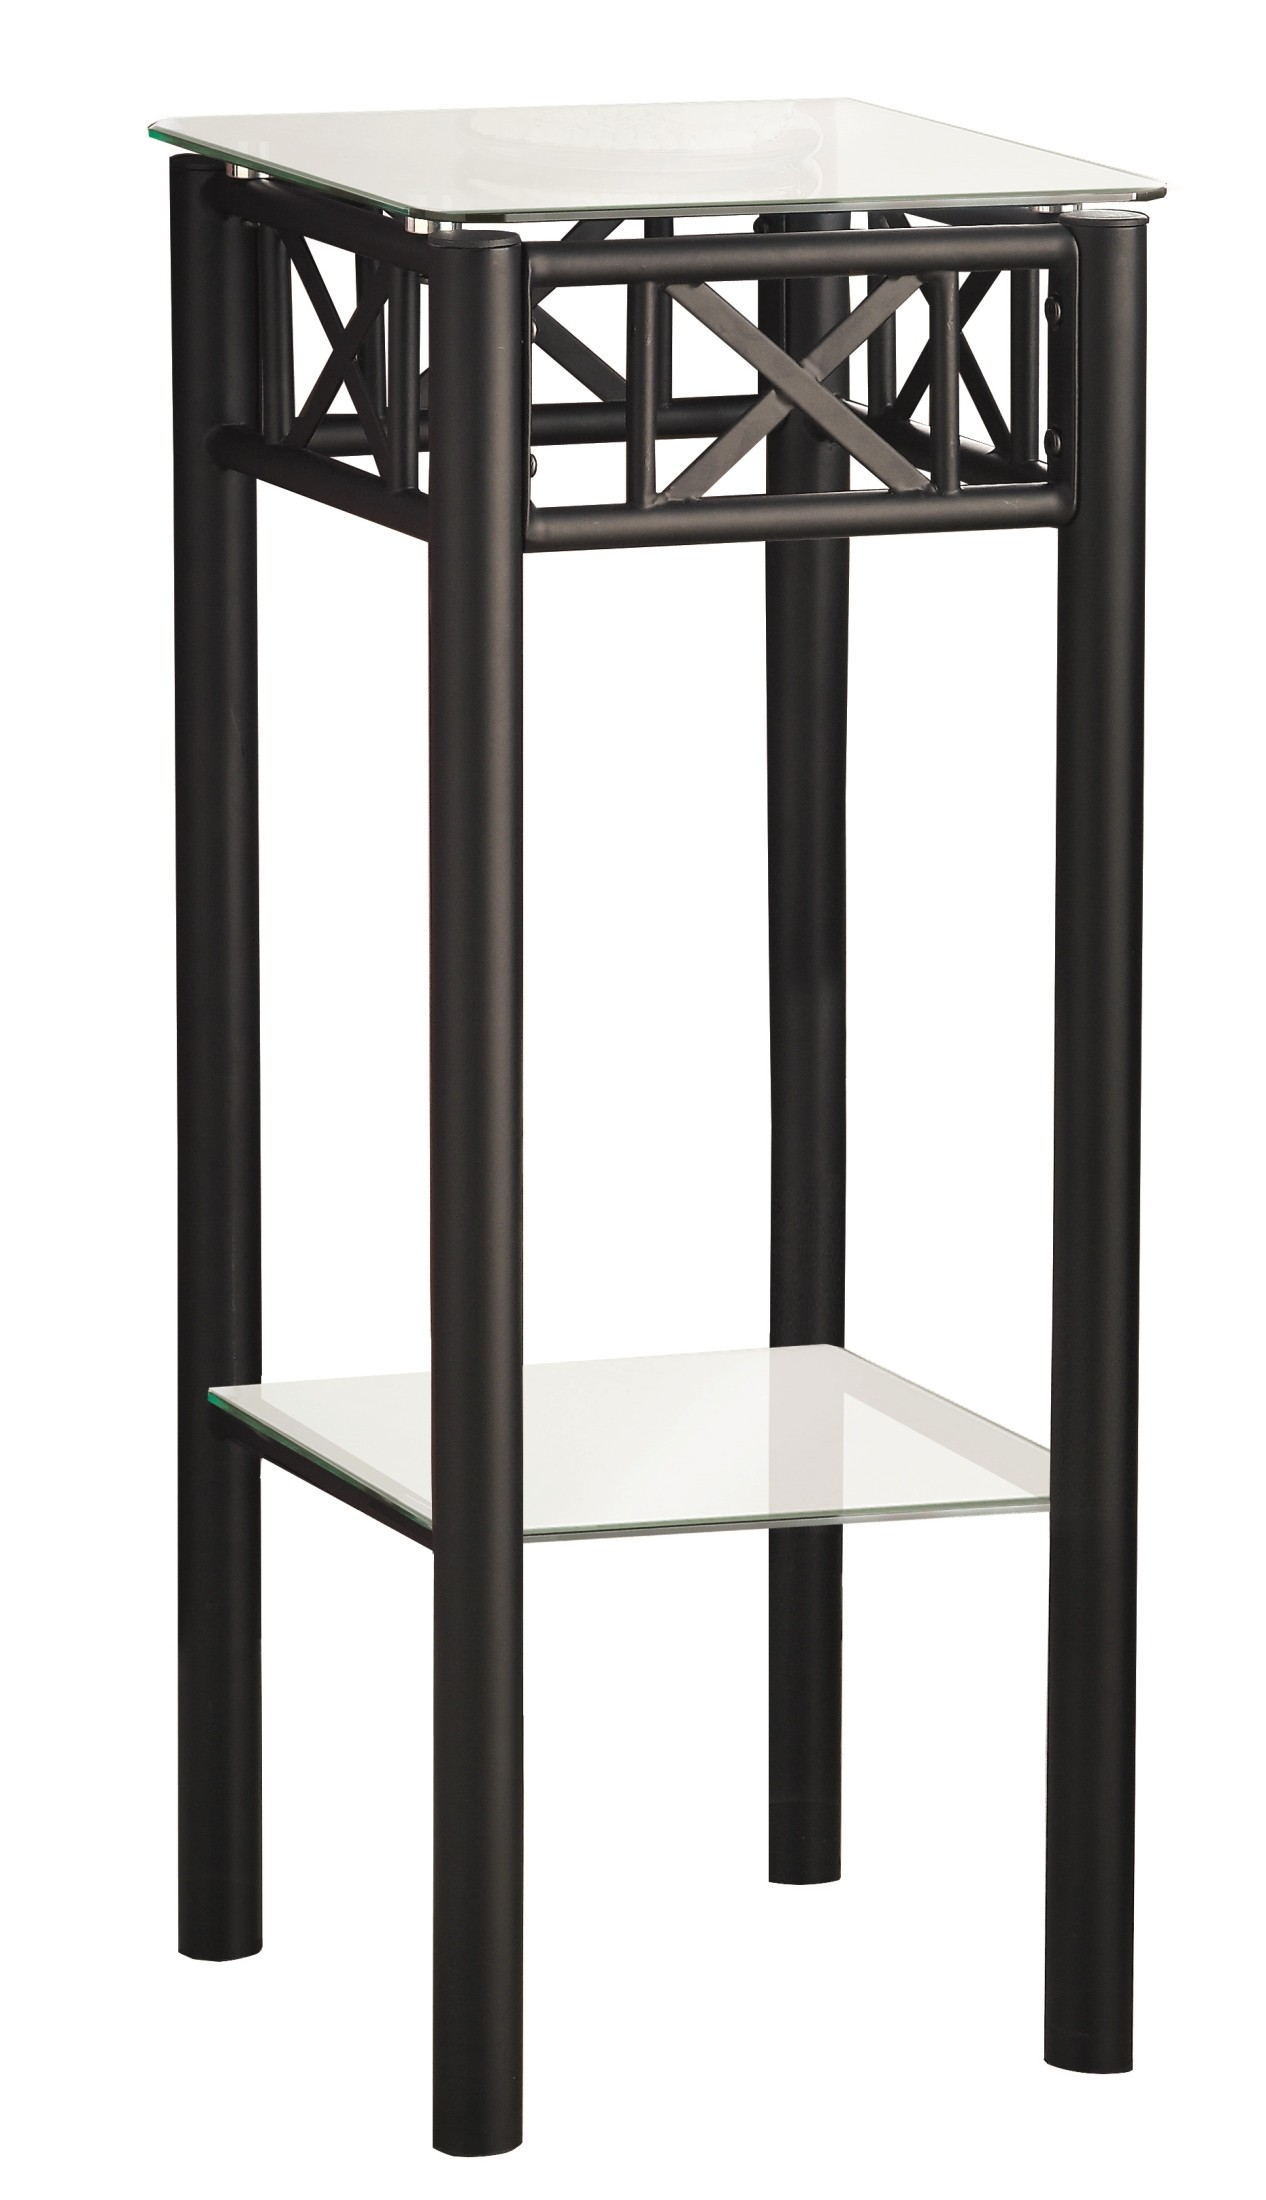 Black Wire Plant Stand 3078 Black Metal Plant Stand From Monarch I 3078